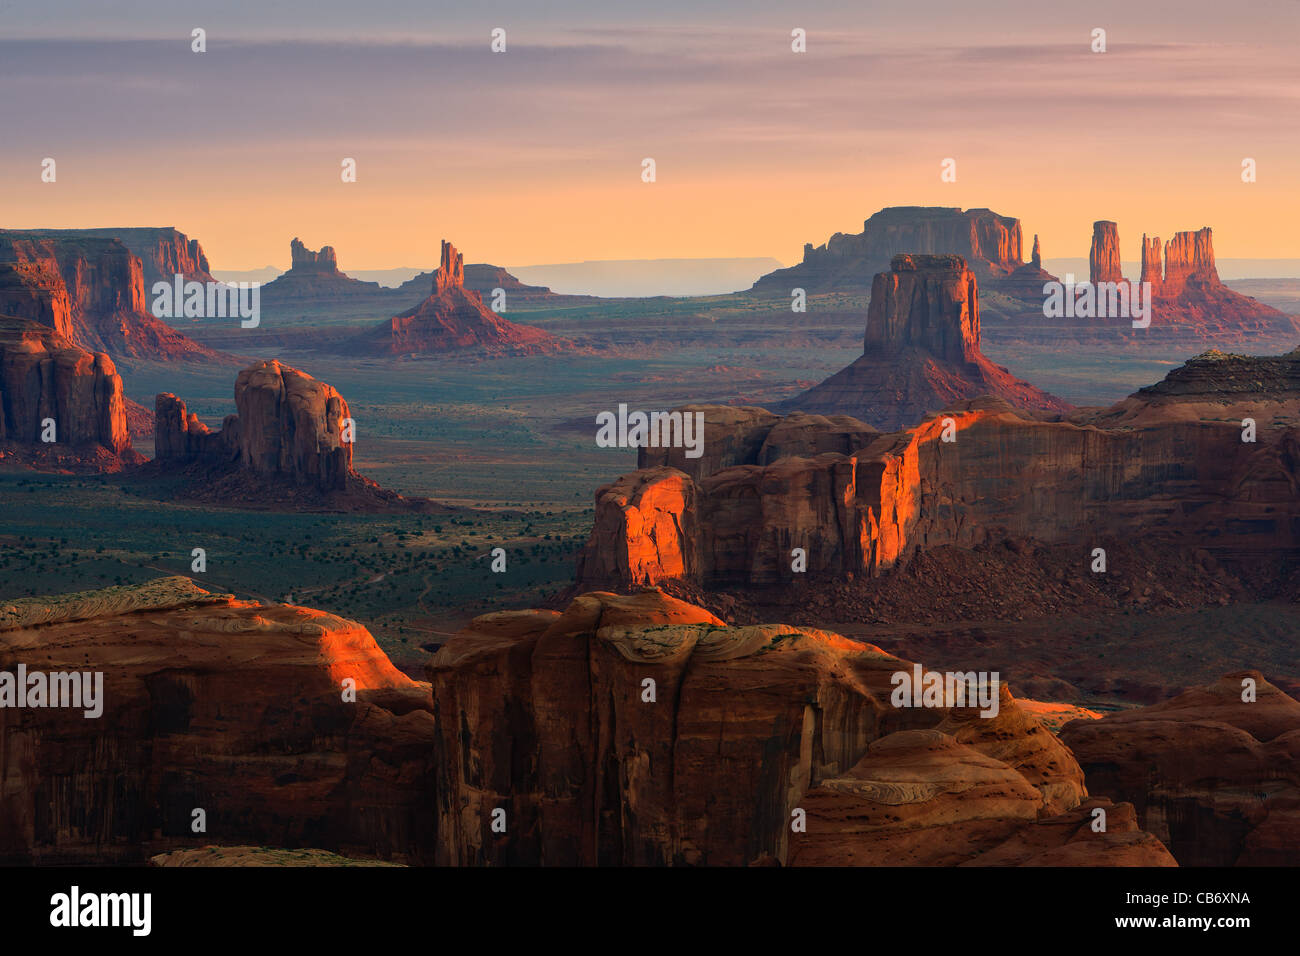 Sunrise with the view from Hunts Mesa in Monument Valley at the border of Utah and Arizona, USA - Stock Image